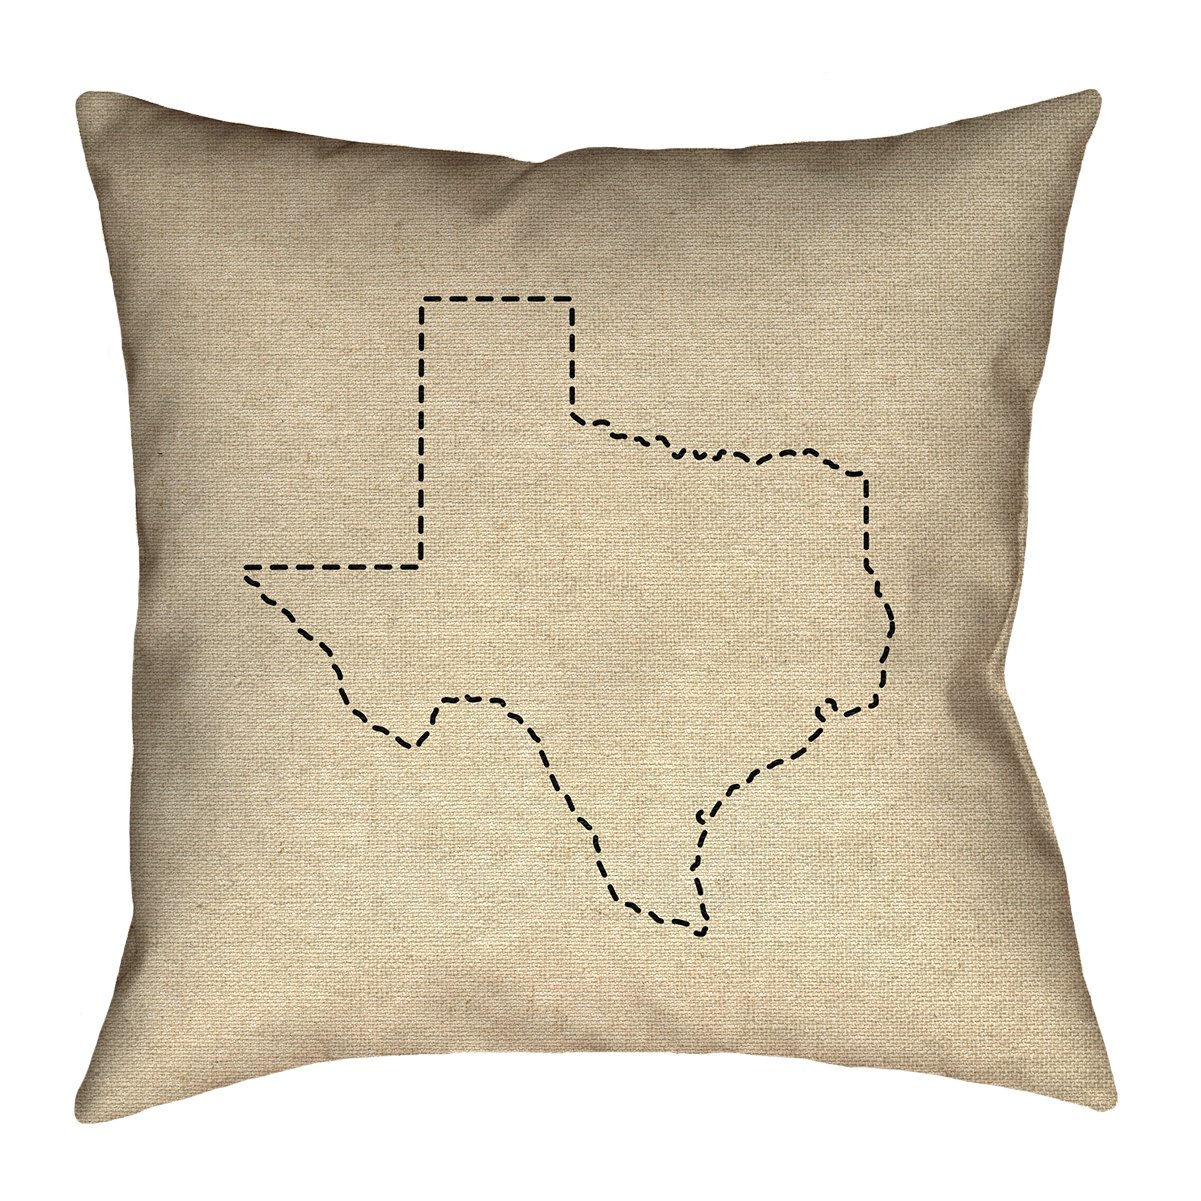 ArtVerse Katelyn Smith 36' x 36' Floor Double Sided Print with Concealed Zipper & Insert Texas Outline Pillow SMI400F3636L